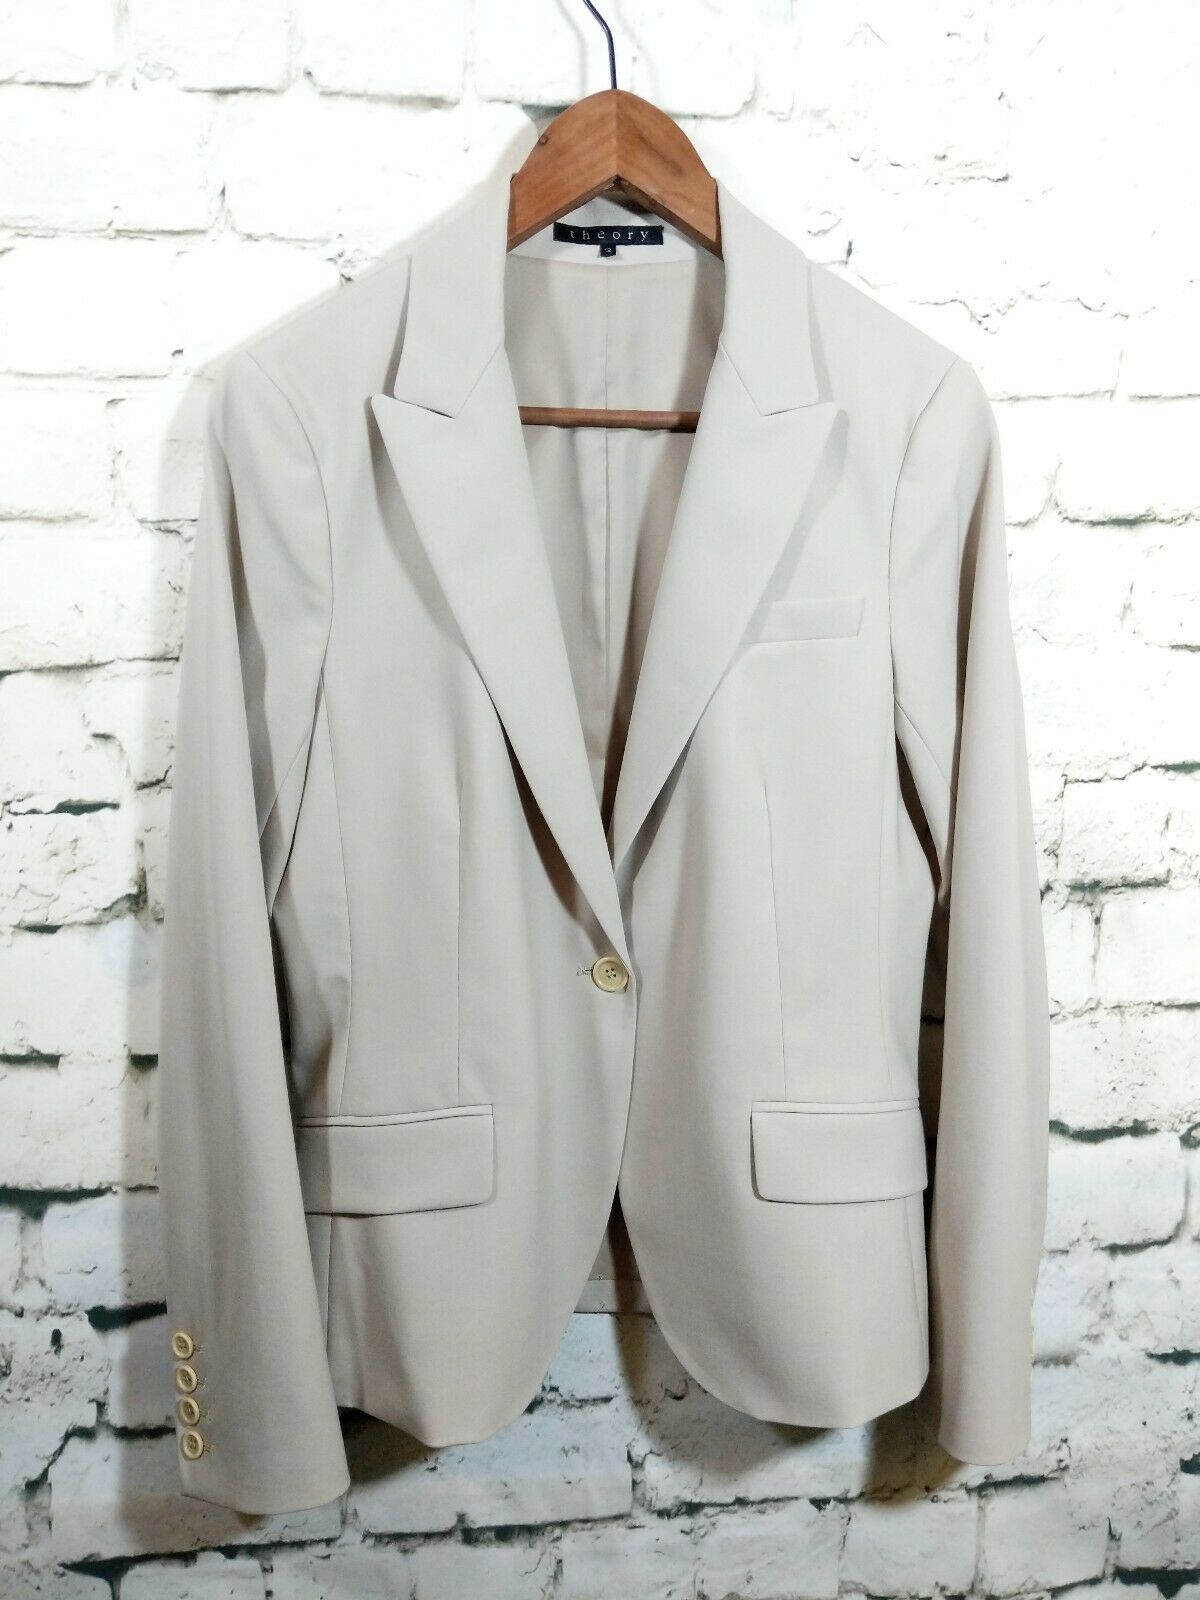 Theory Womens 12 Wool Blazer Single one button Beige Lined Light shoulder padded